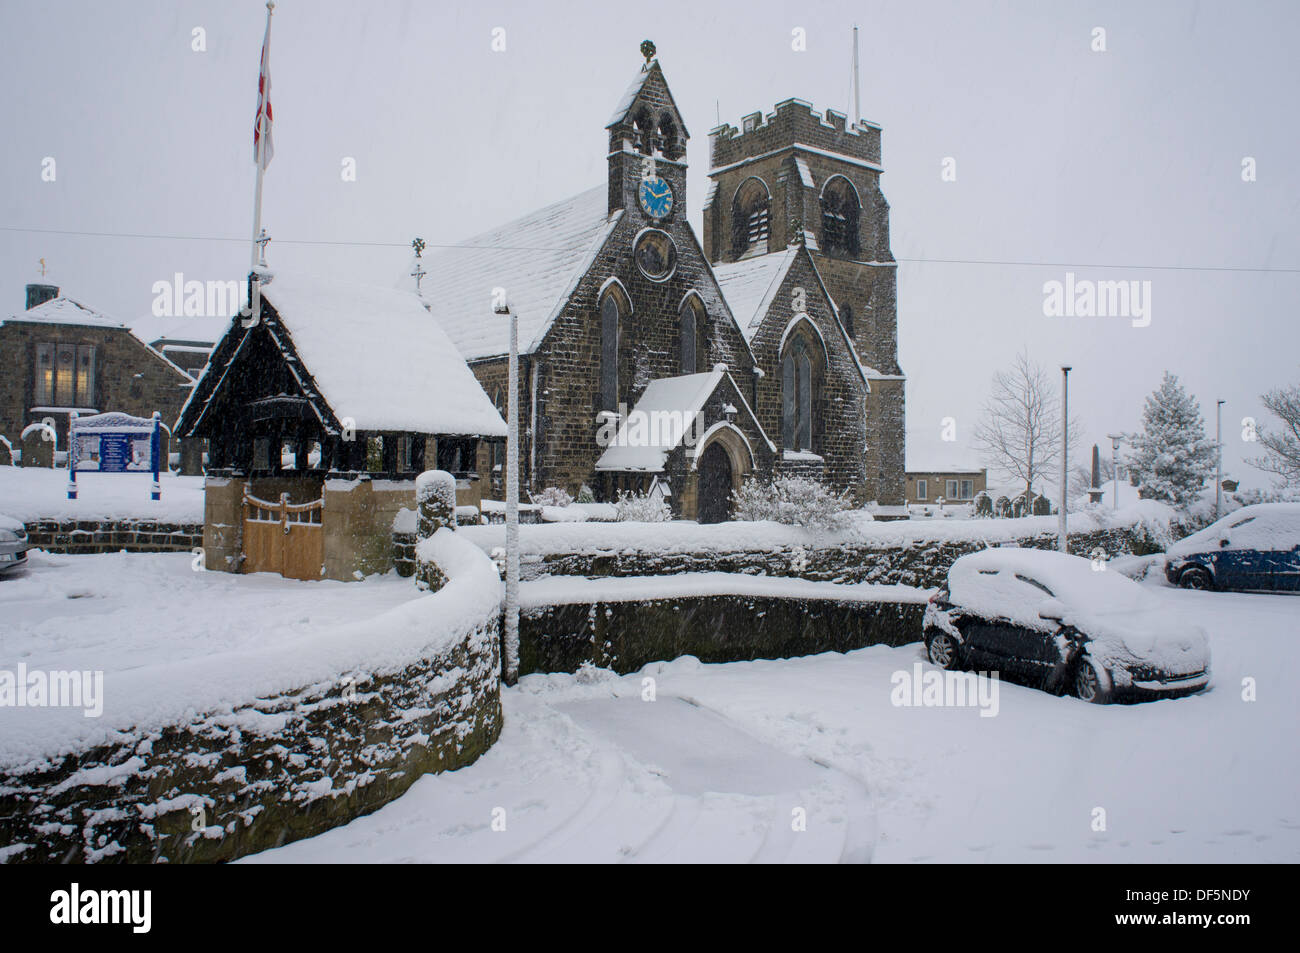 Cold, grey winter scene with snow falling on St. John's Church (buildings & cars covered with white layer) - Stock Image